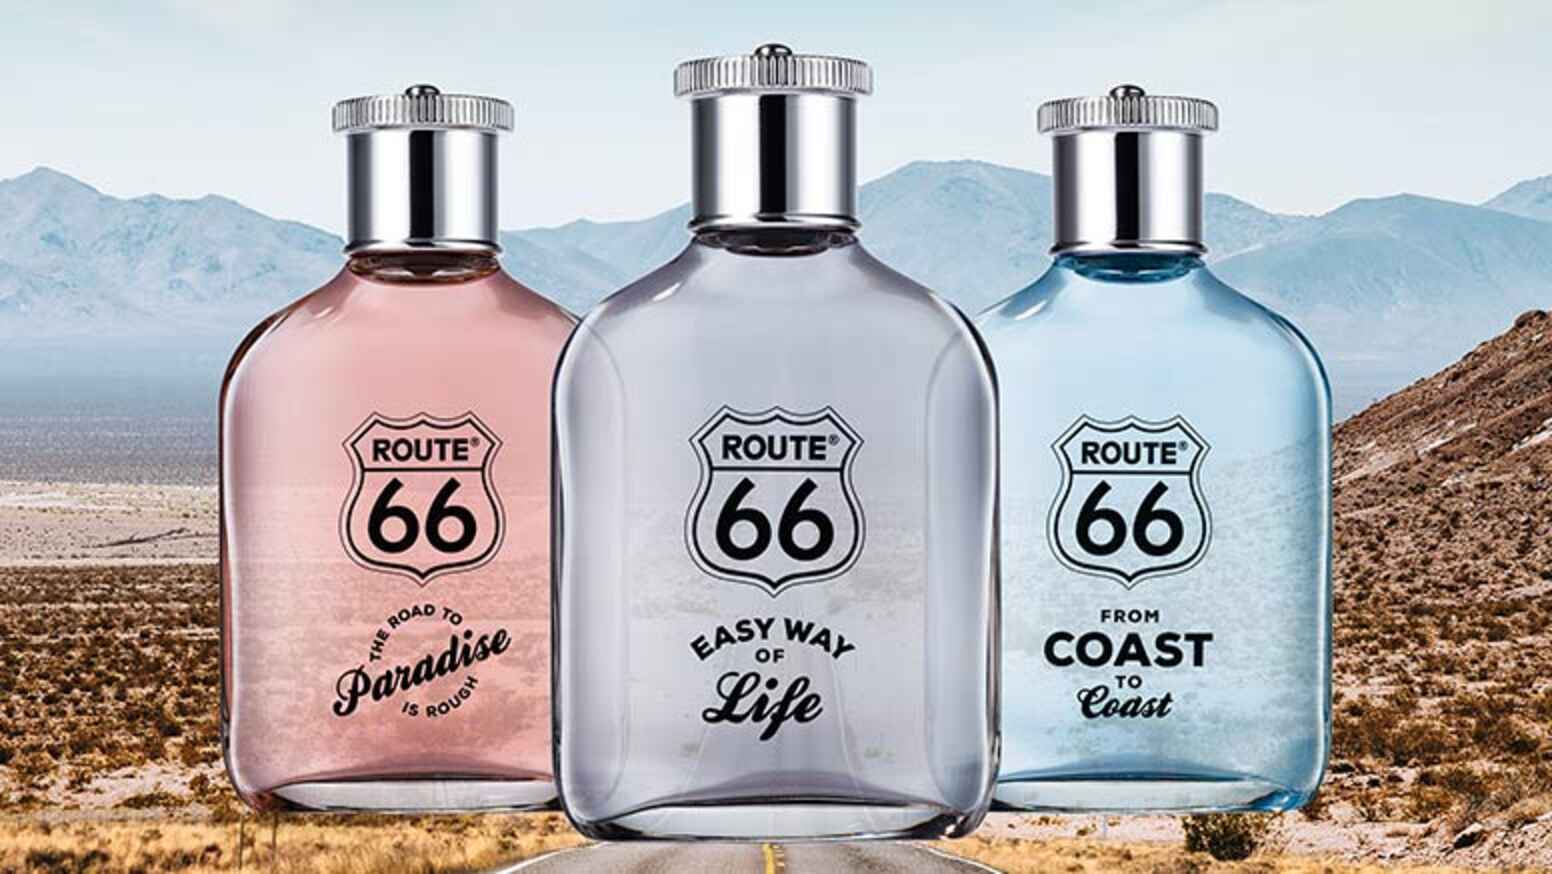 csm Route66 markendetail 776x437 332ce97033 - Home